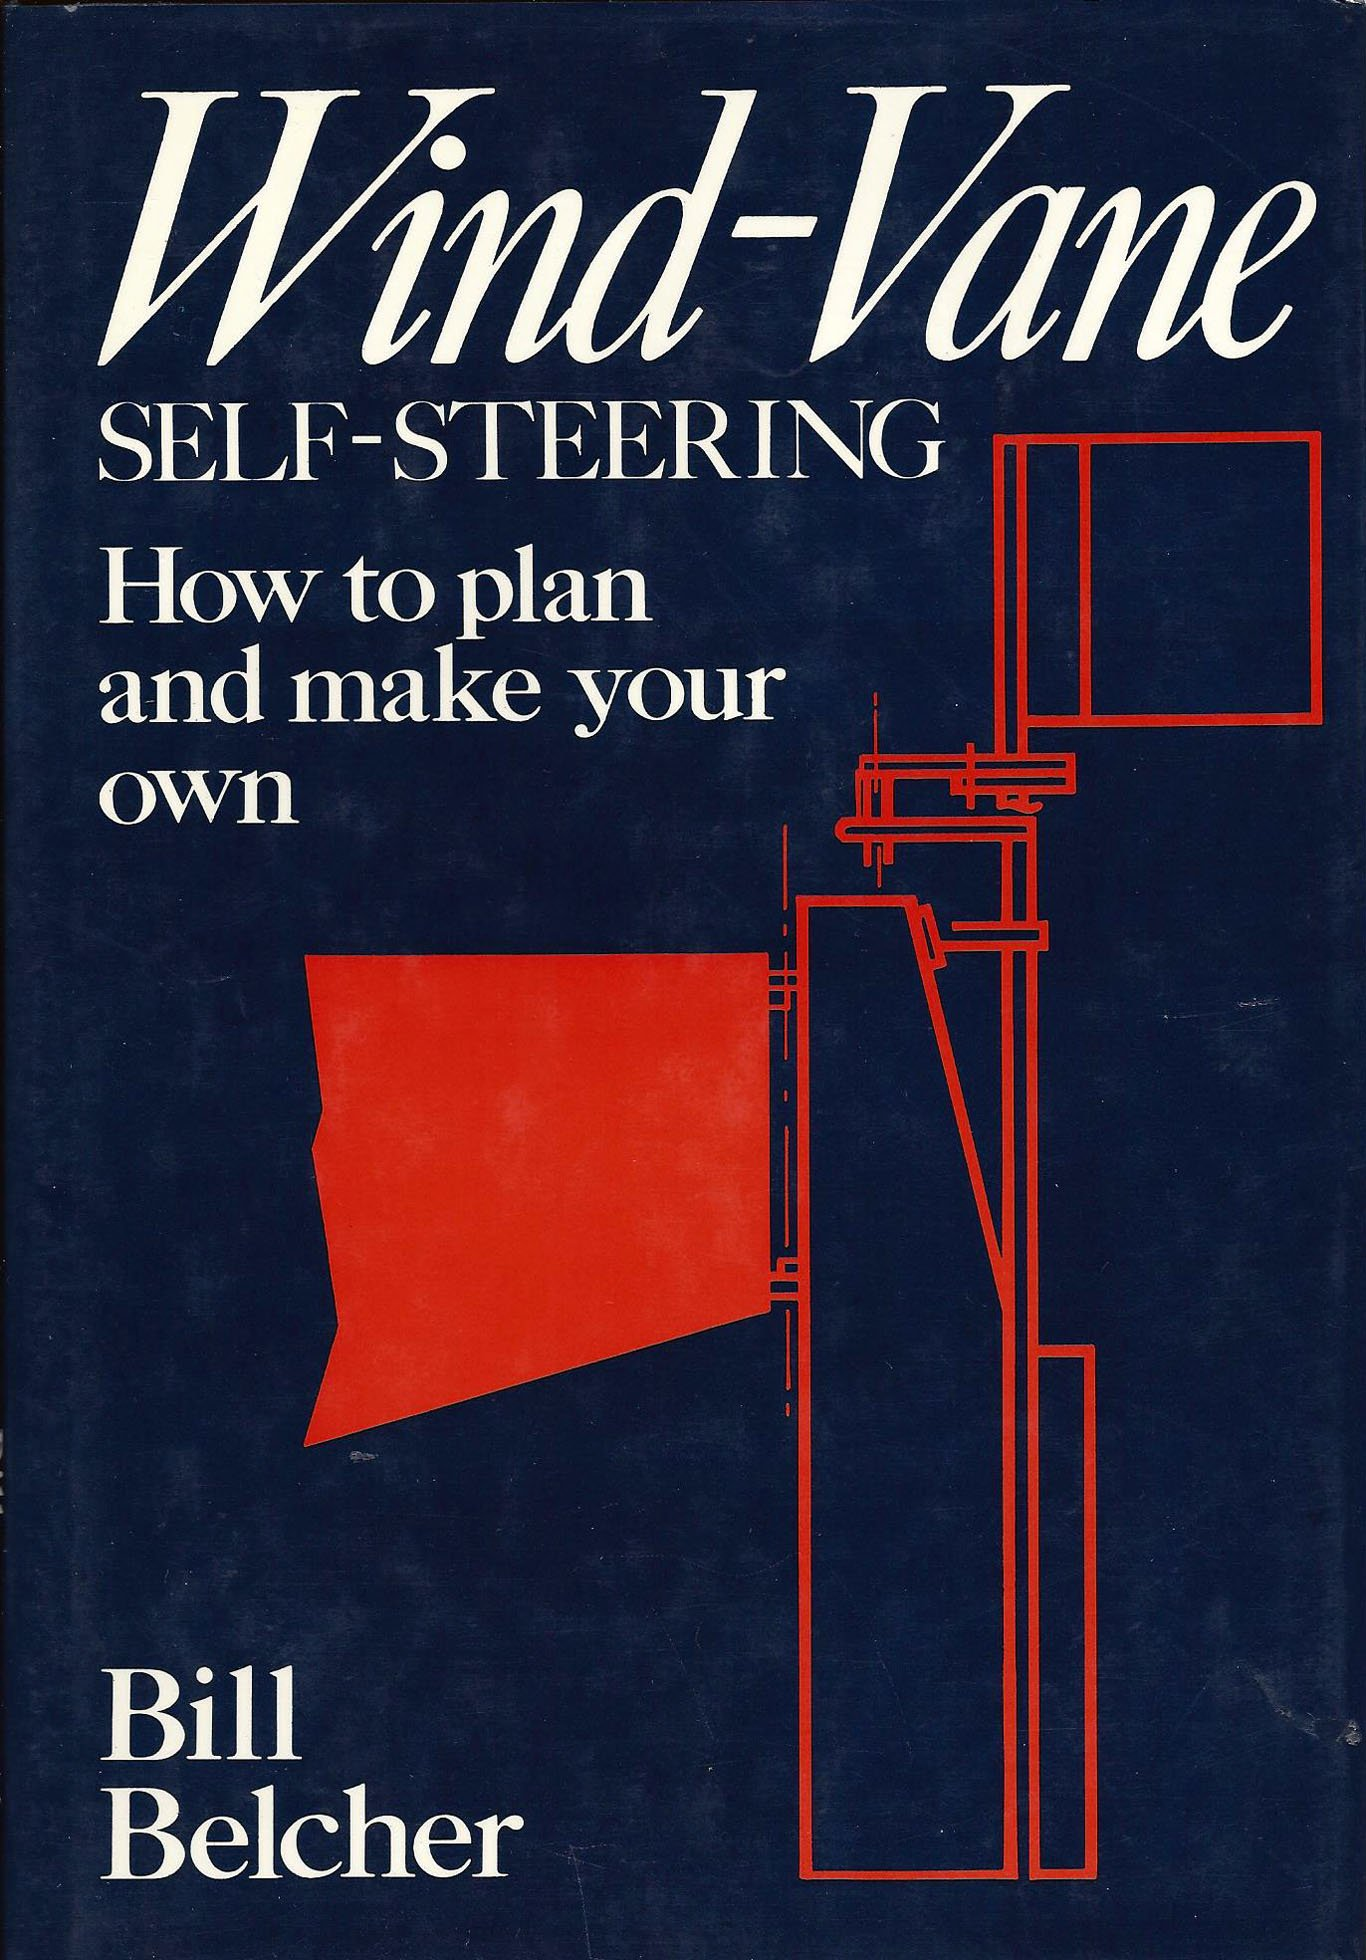 wind vane self steering how to plan and make your own belcher bill